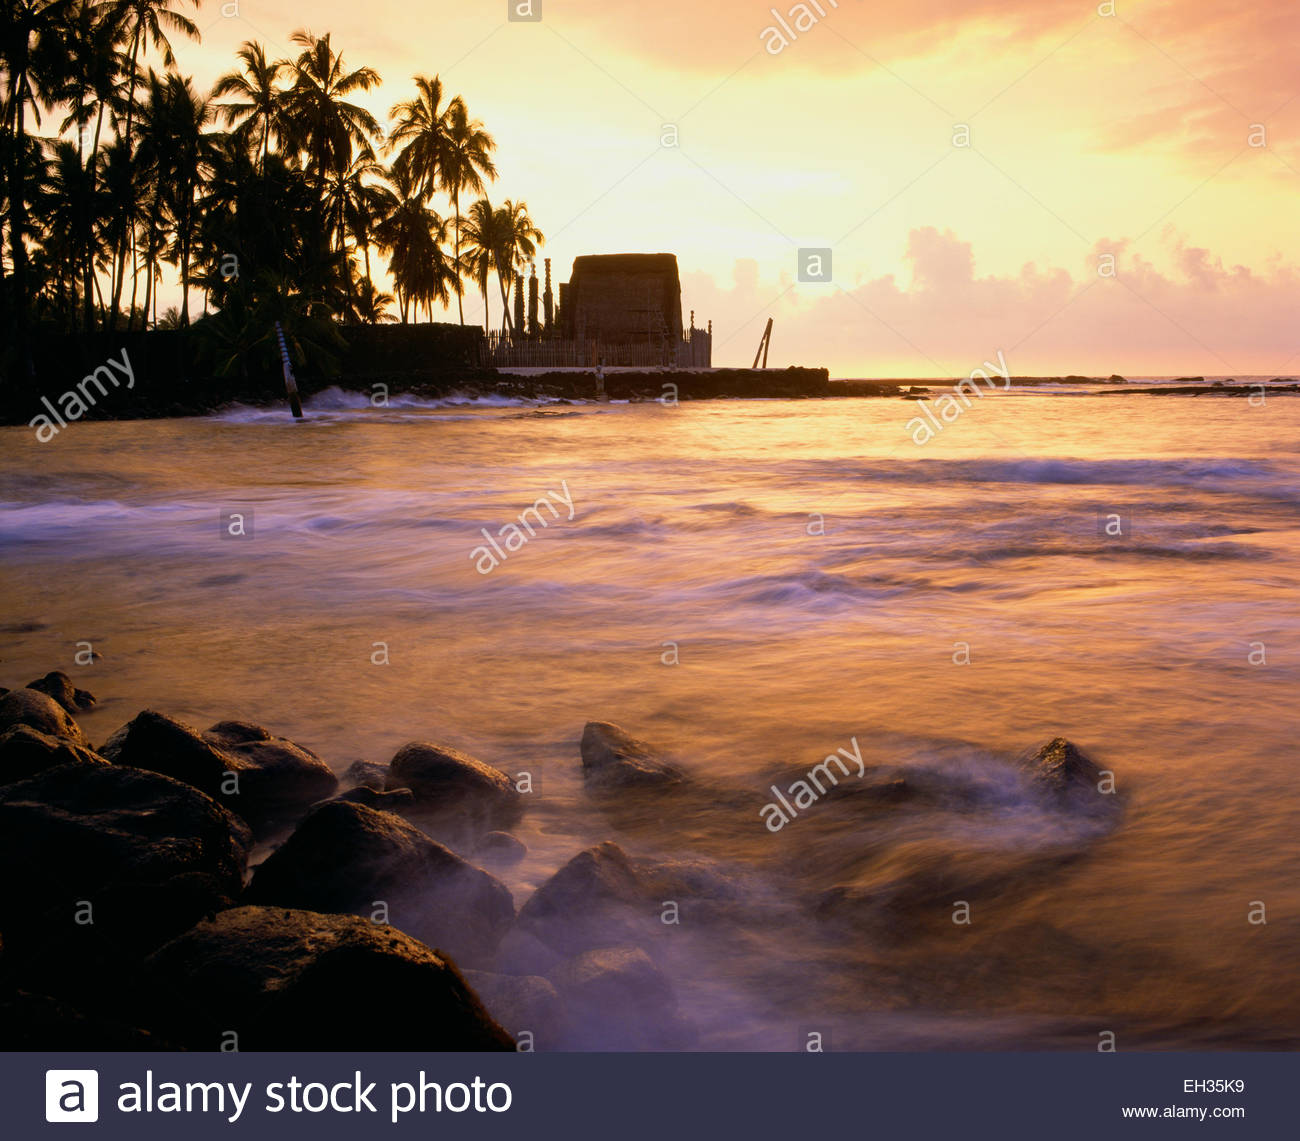 Pu'uhonua o Honaunau National Historic Site.  Heiau, Big Island, Hawaii. Stockbild